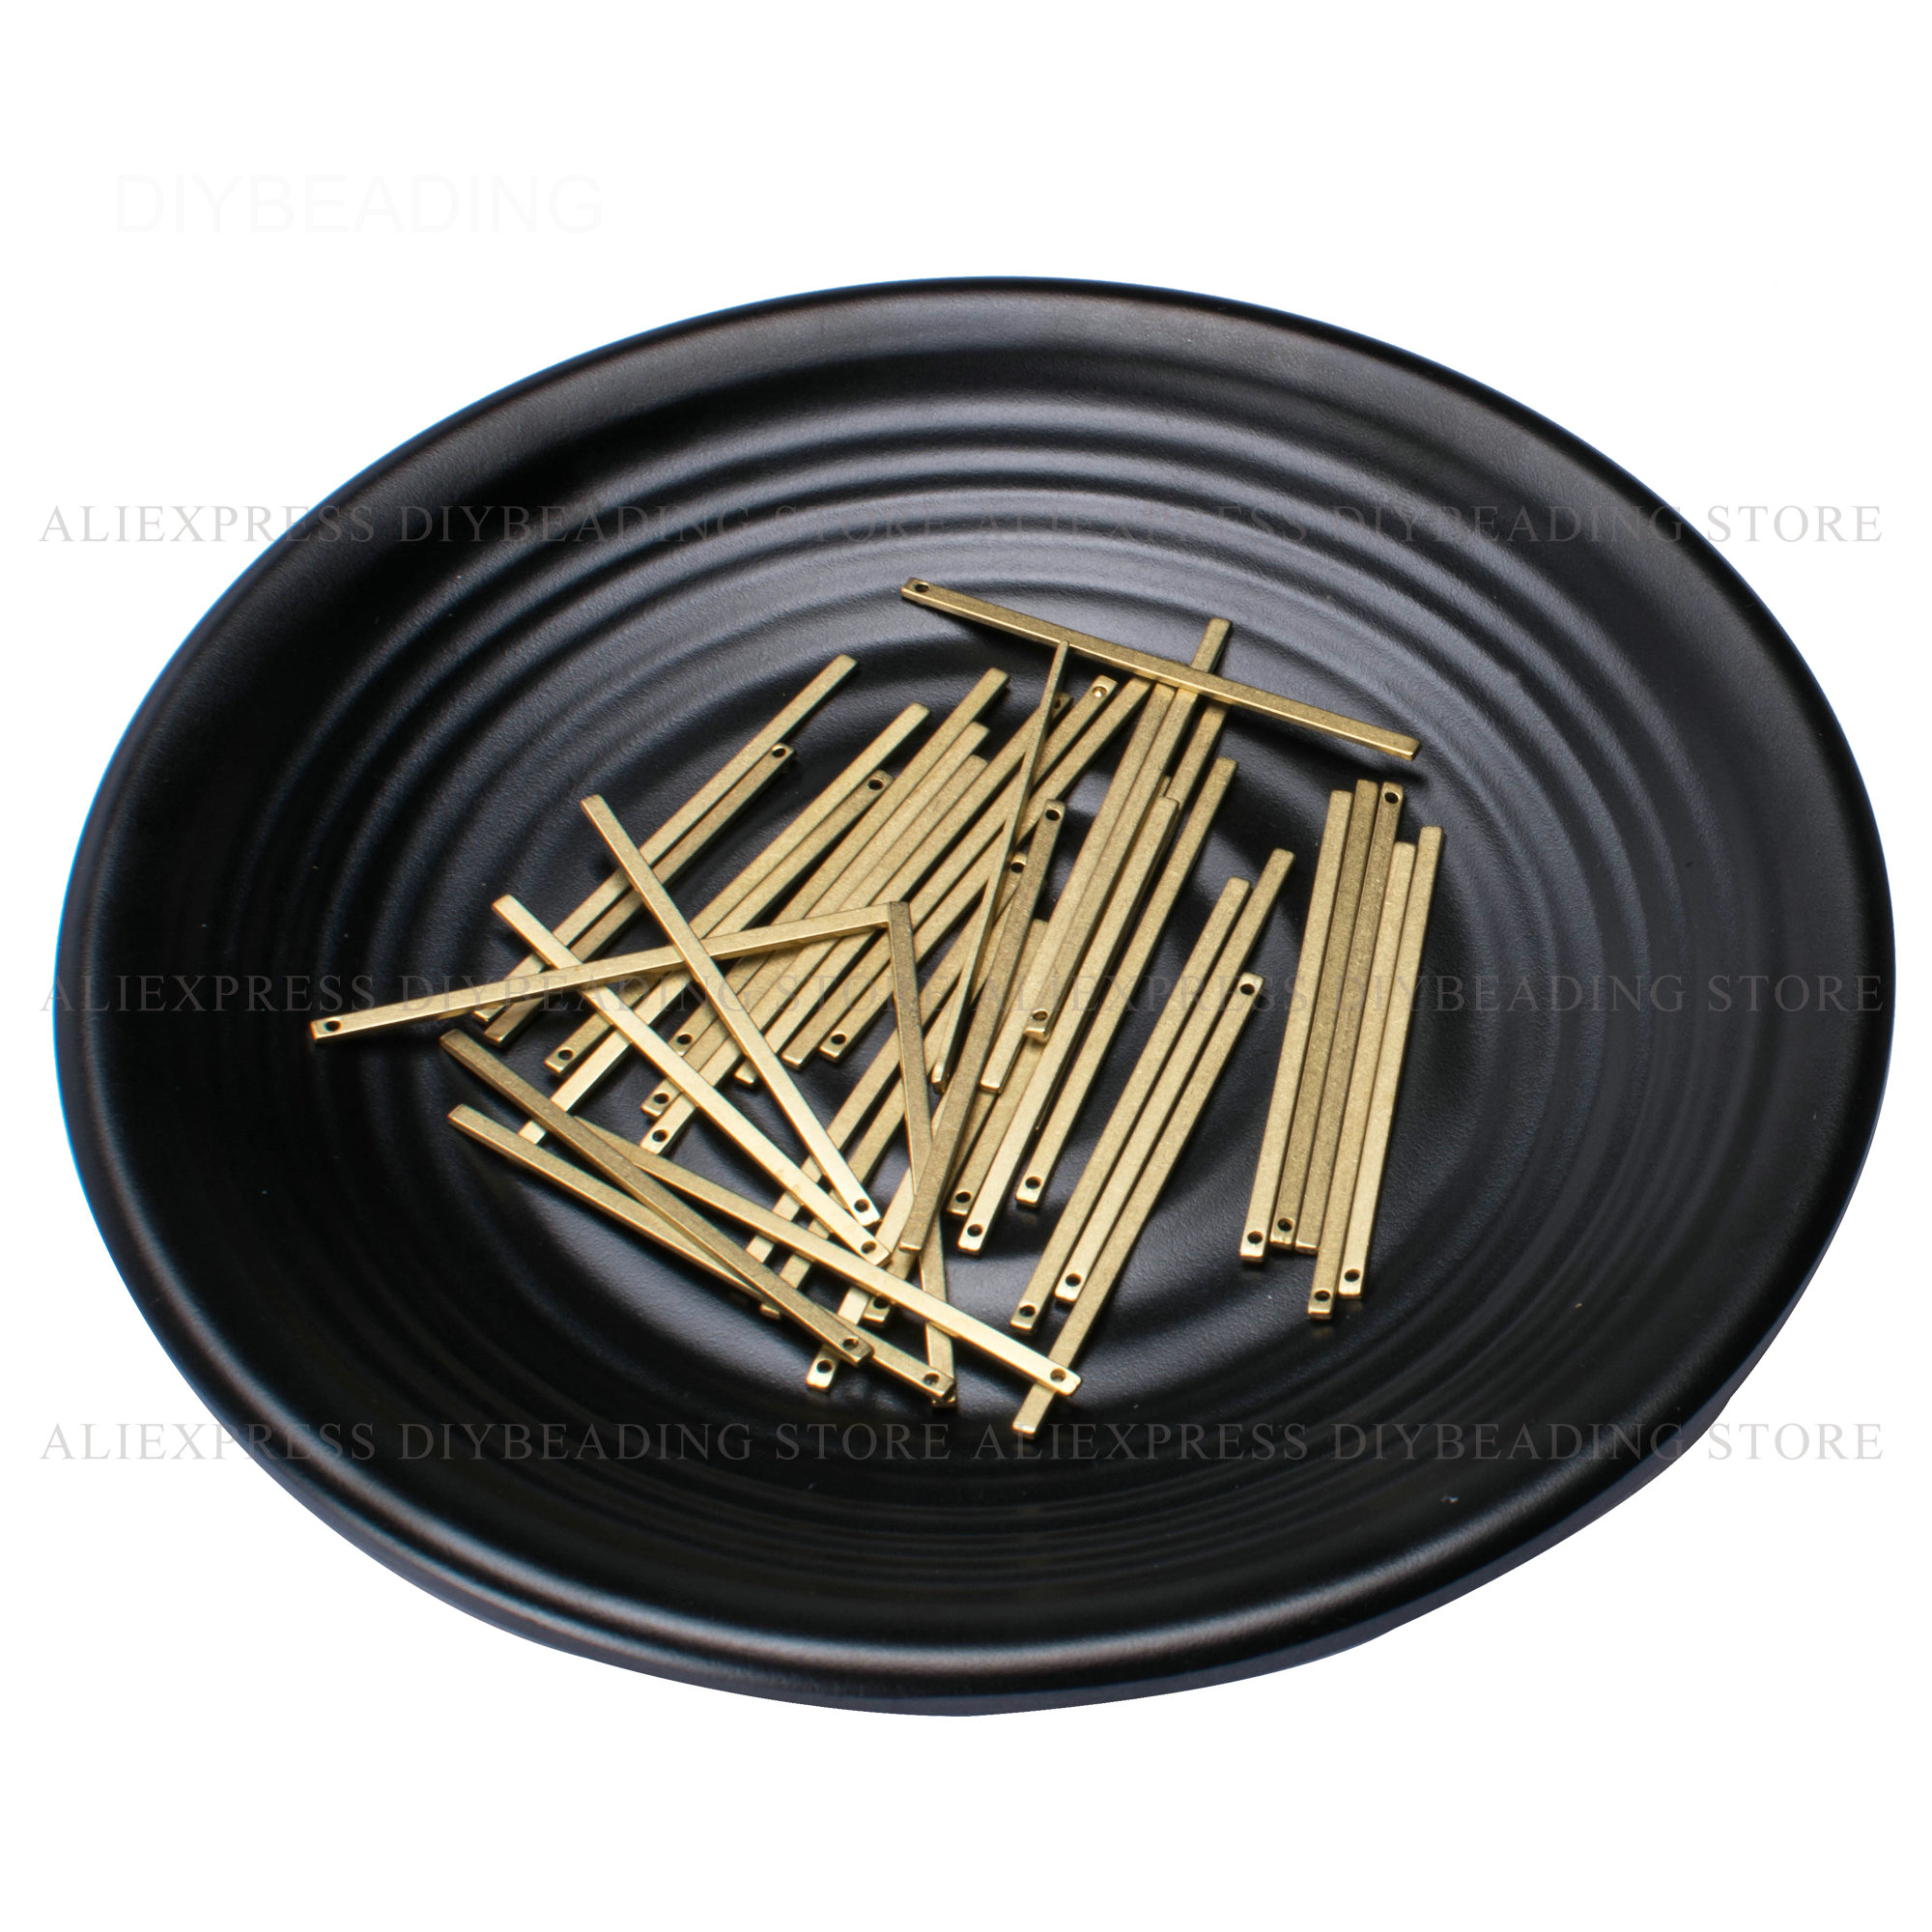 50-200 Pcs Brass Rectangle Geometric Tube Bar Finding Lots Wholesale 20mm 30mm 40mm 50mm 60mm Metal Component For Jewelry Making